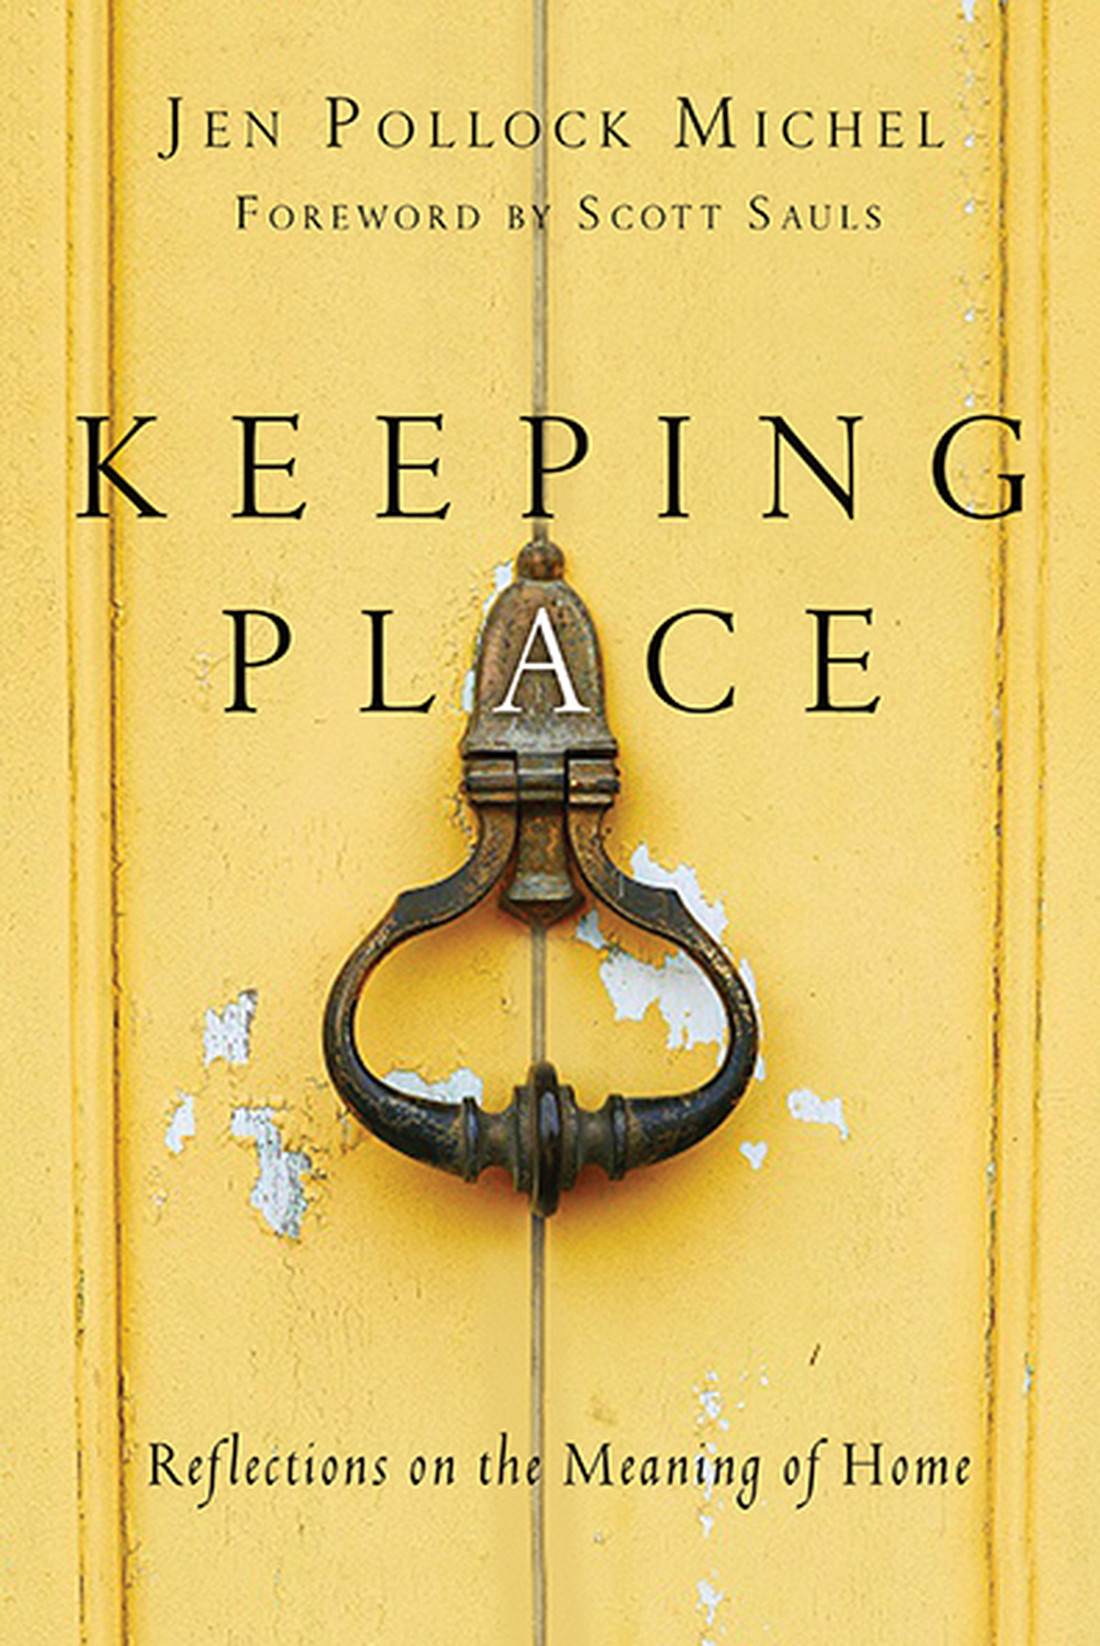 Keeping-Place-11-3.jpg